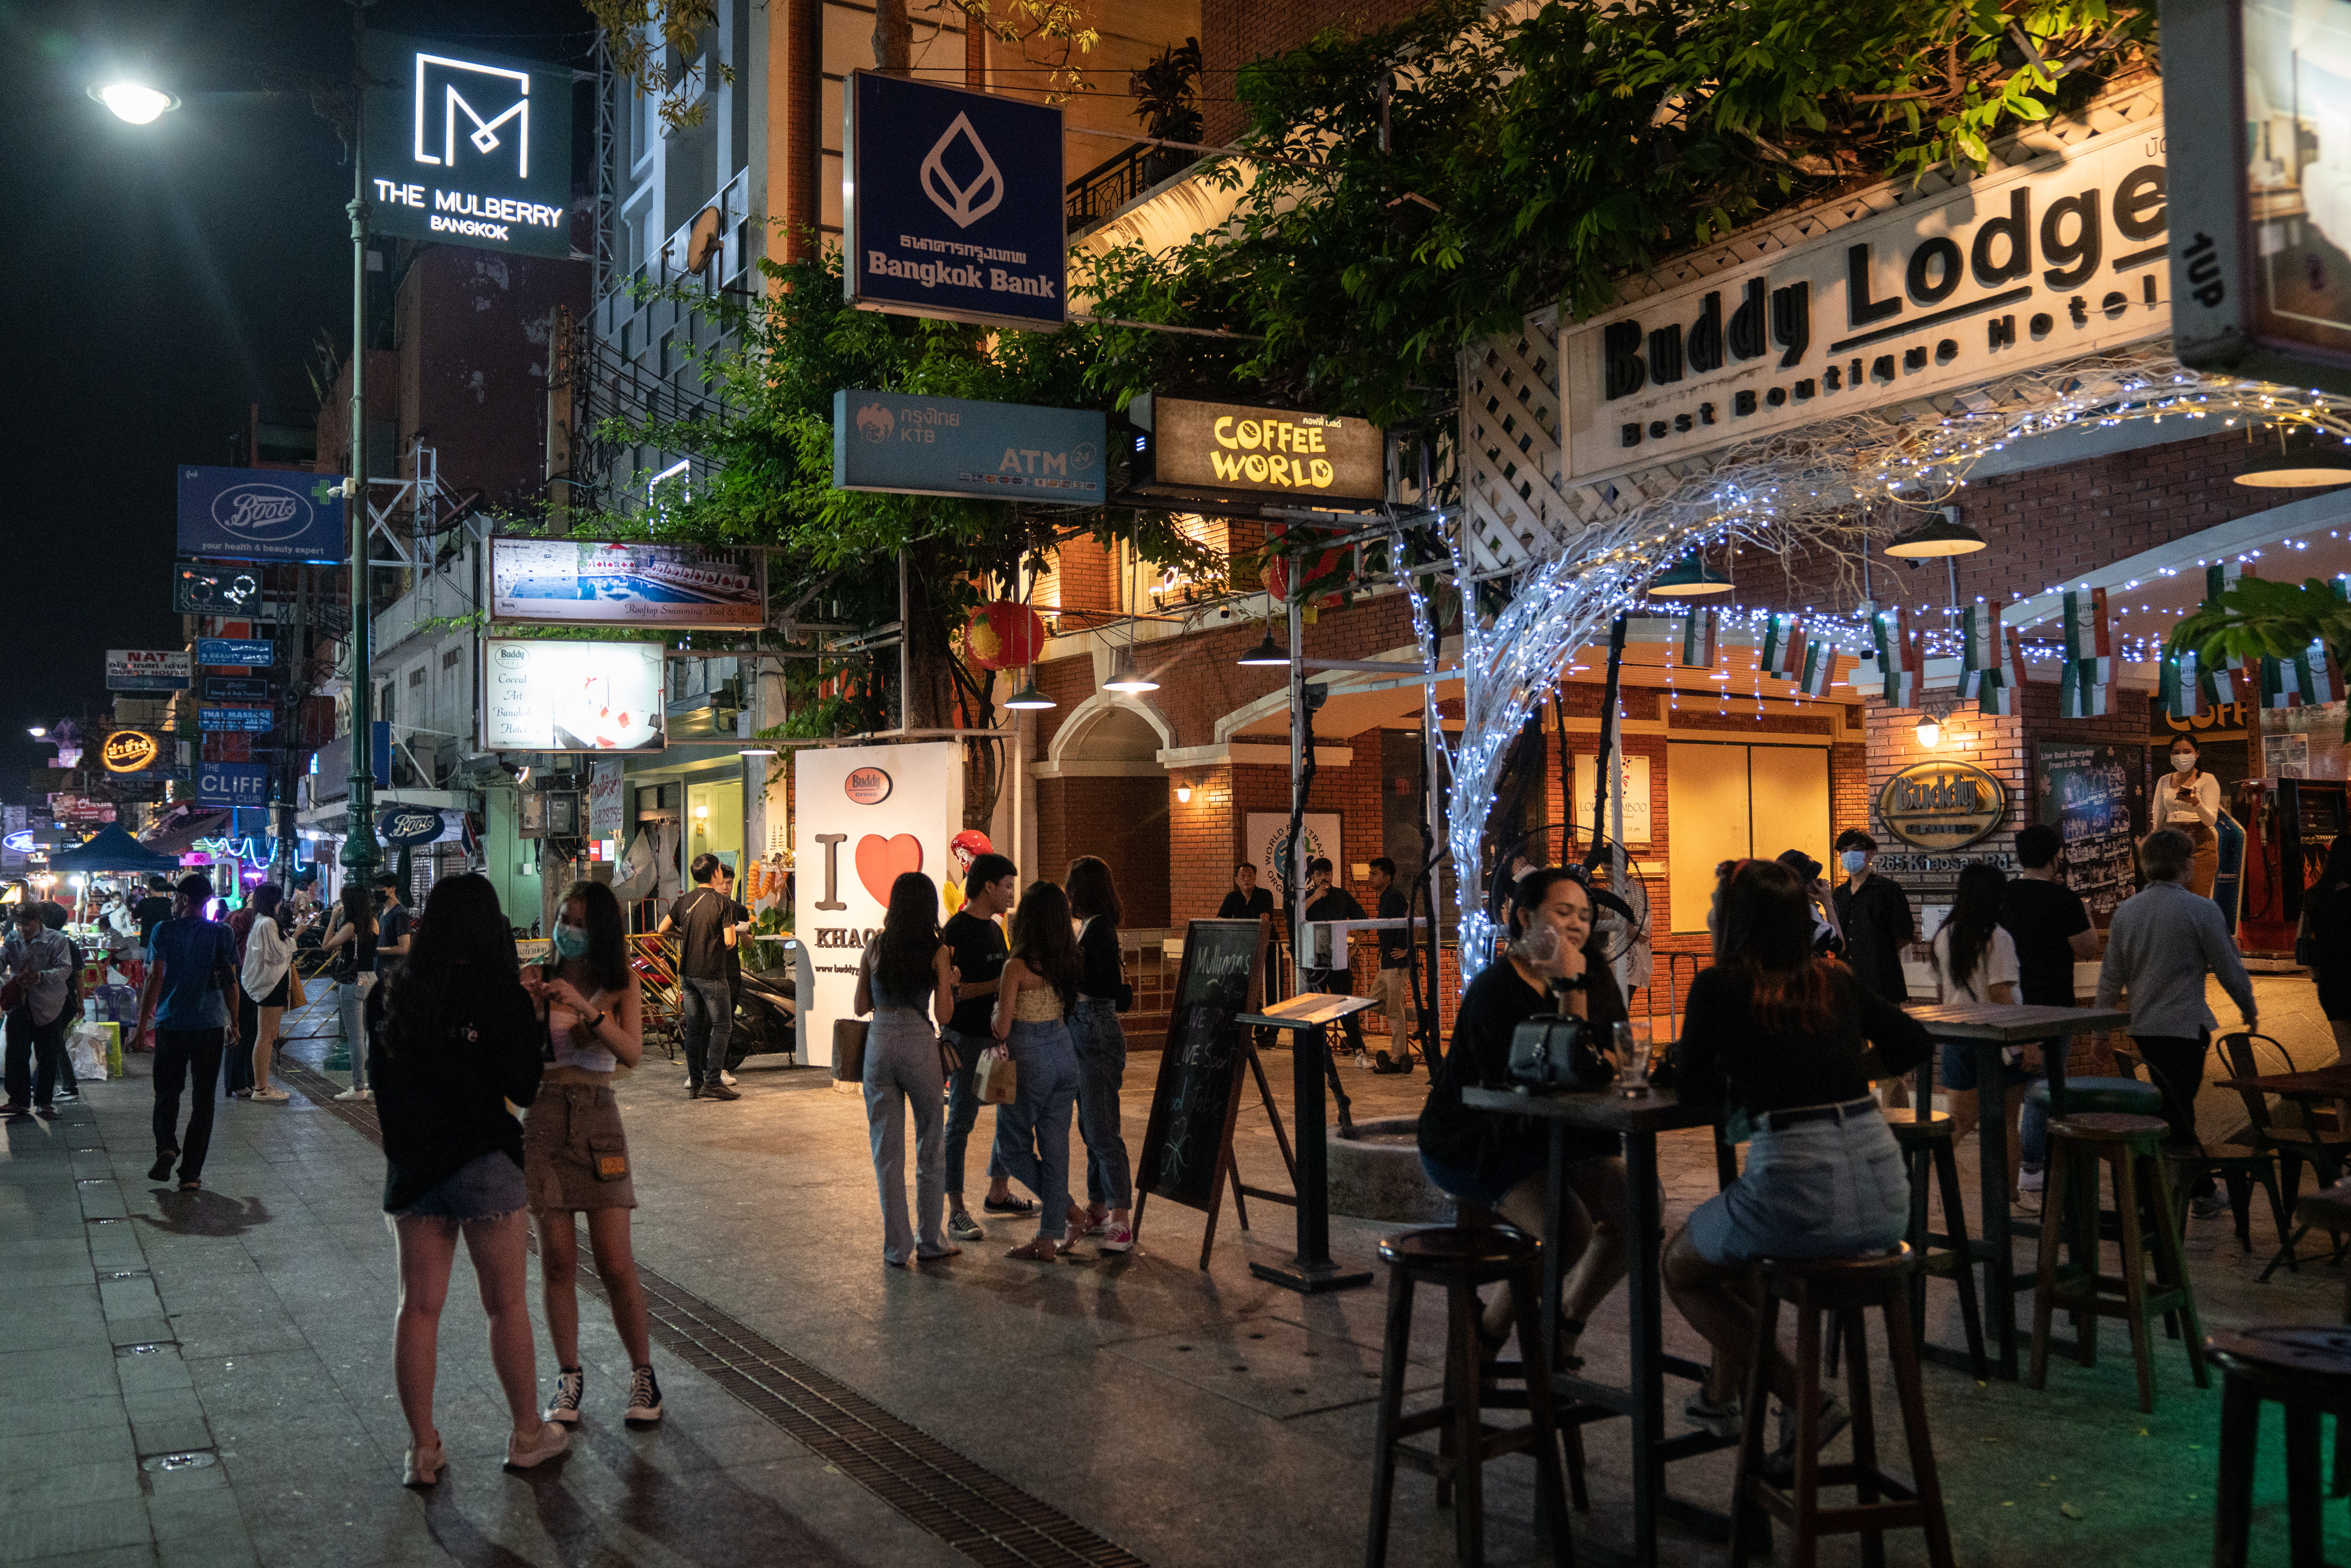 Thailand's 'Hi-So' elite blamed for new Covid-19 cases forcing closure of  nightspots | South China Morning Post